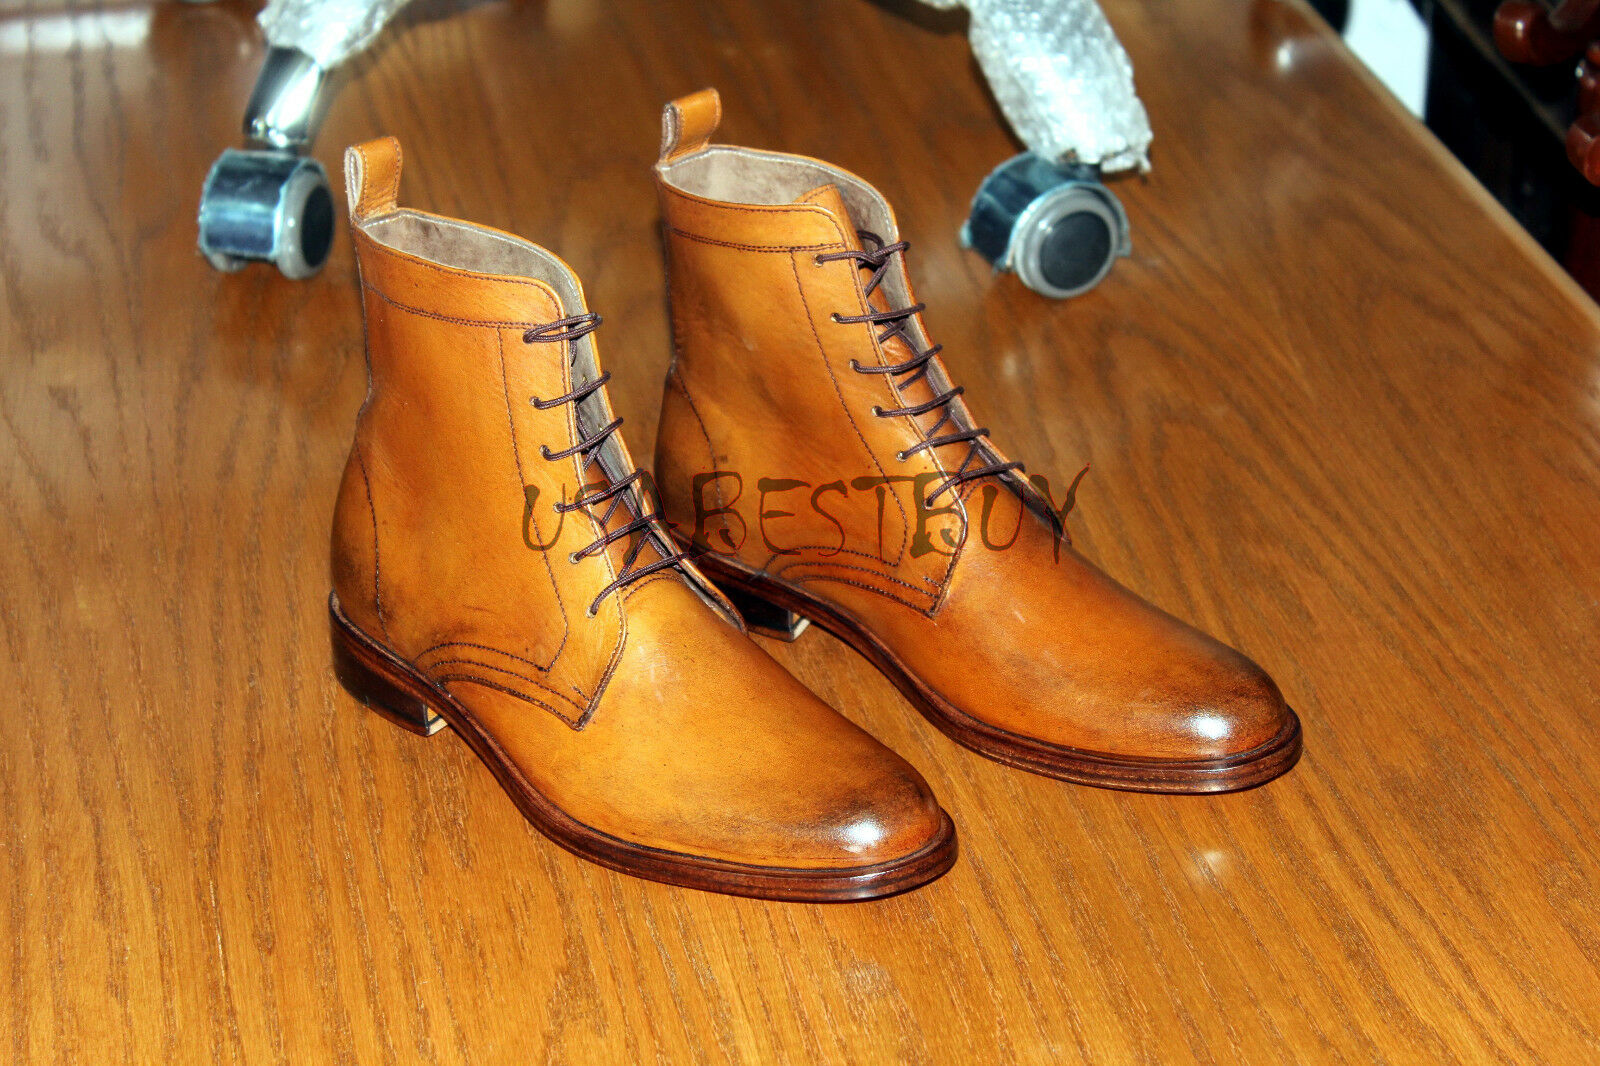 New Handmade Mens Hand Antiqued Brown Leather Boots, Lace up boots